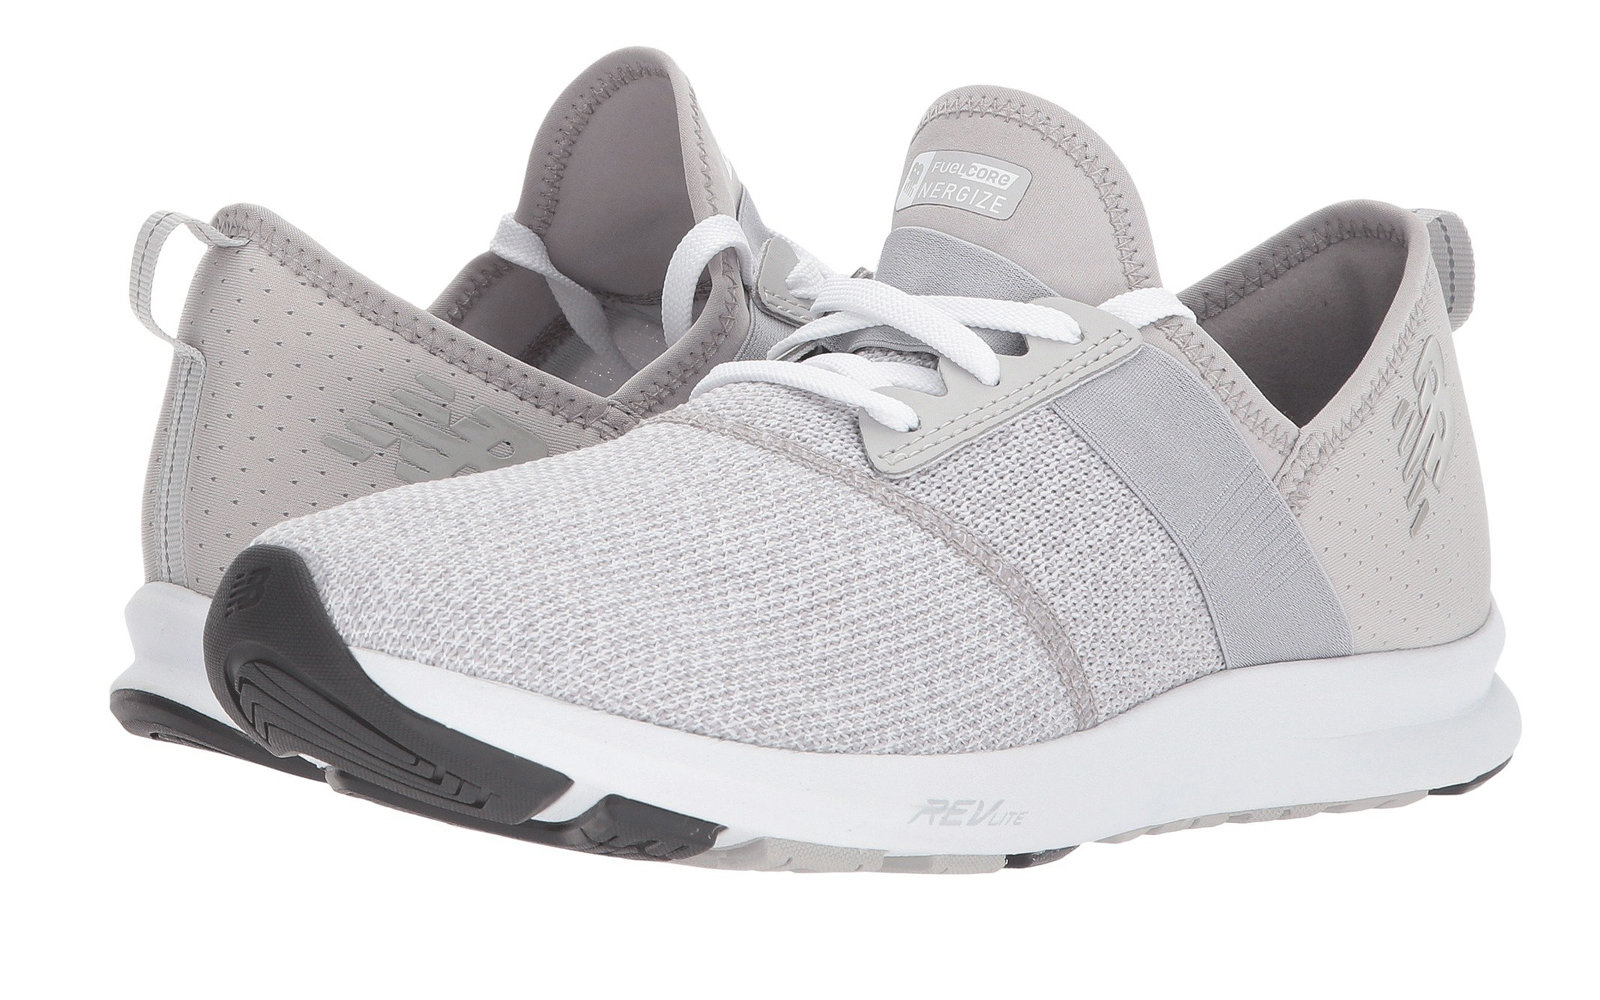 04022c8883e8 New Balance FuelCore NERGIZE in Overcast White. Best Sneakers on Sale at  Zappos